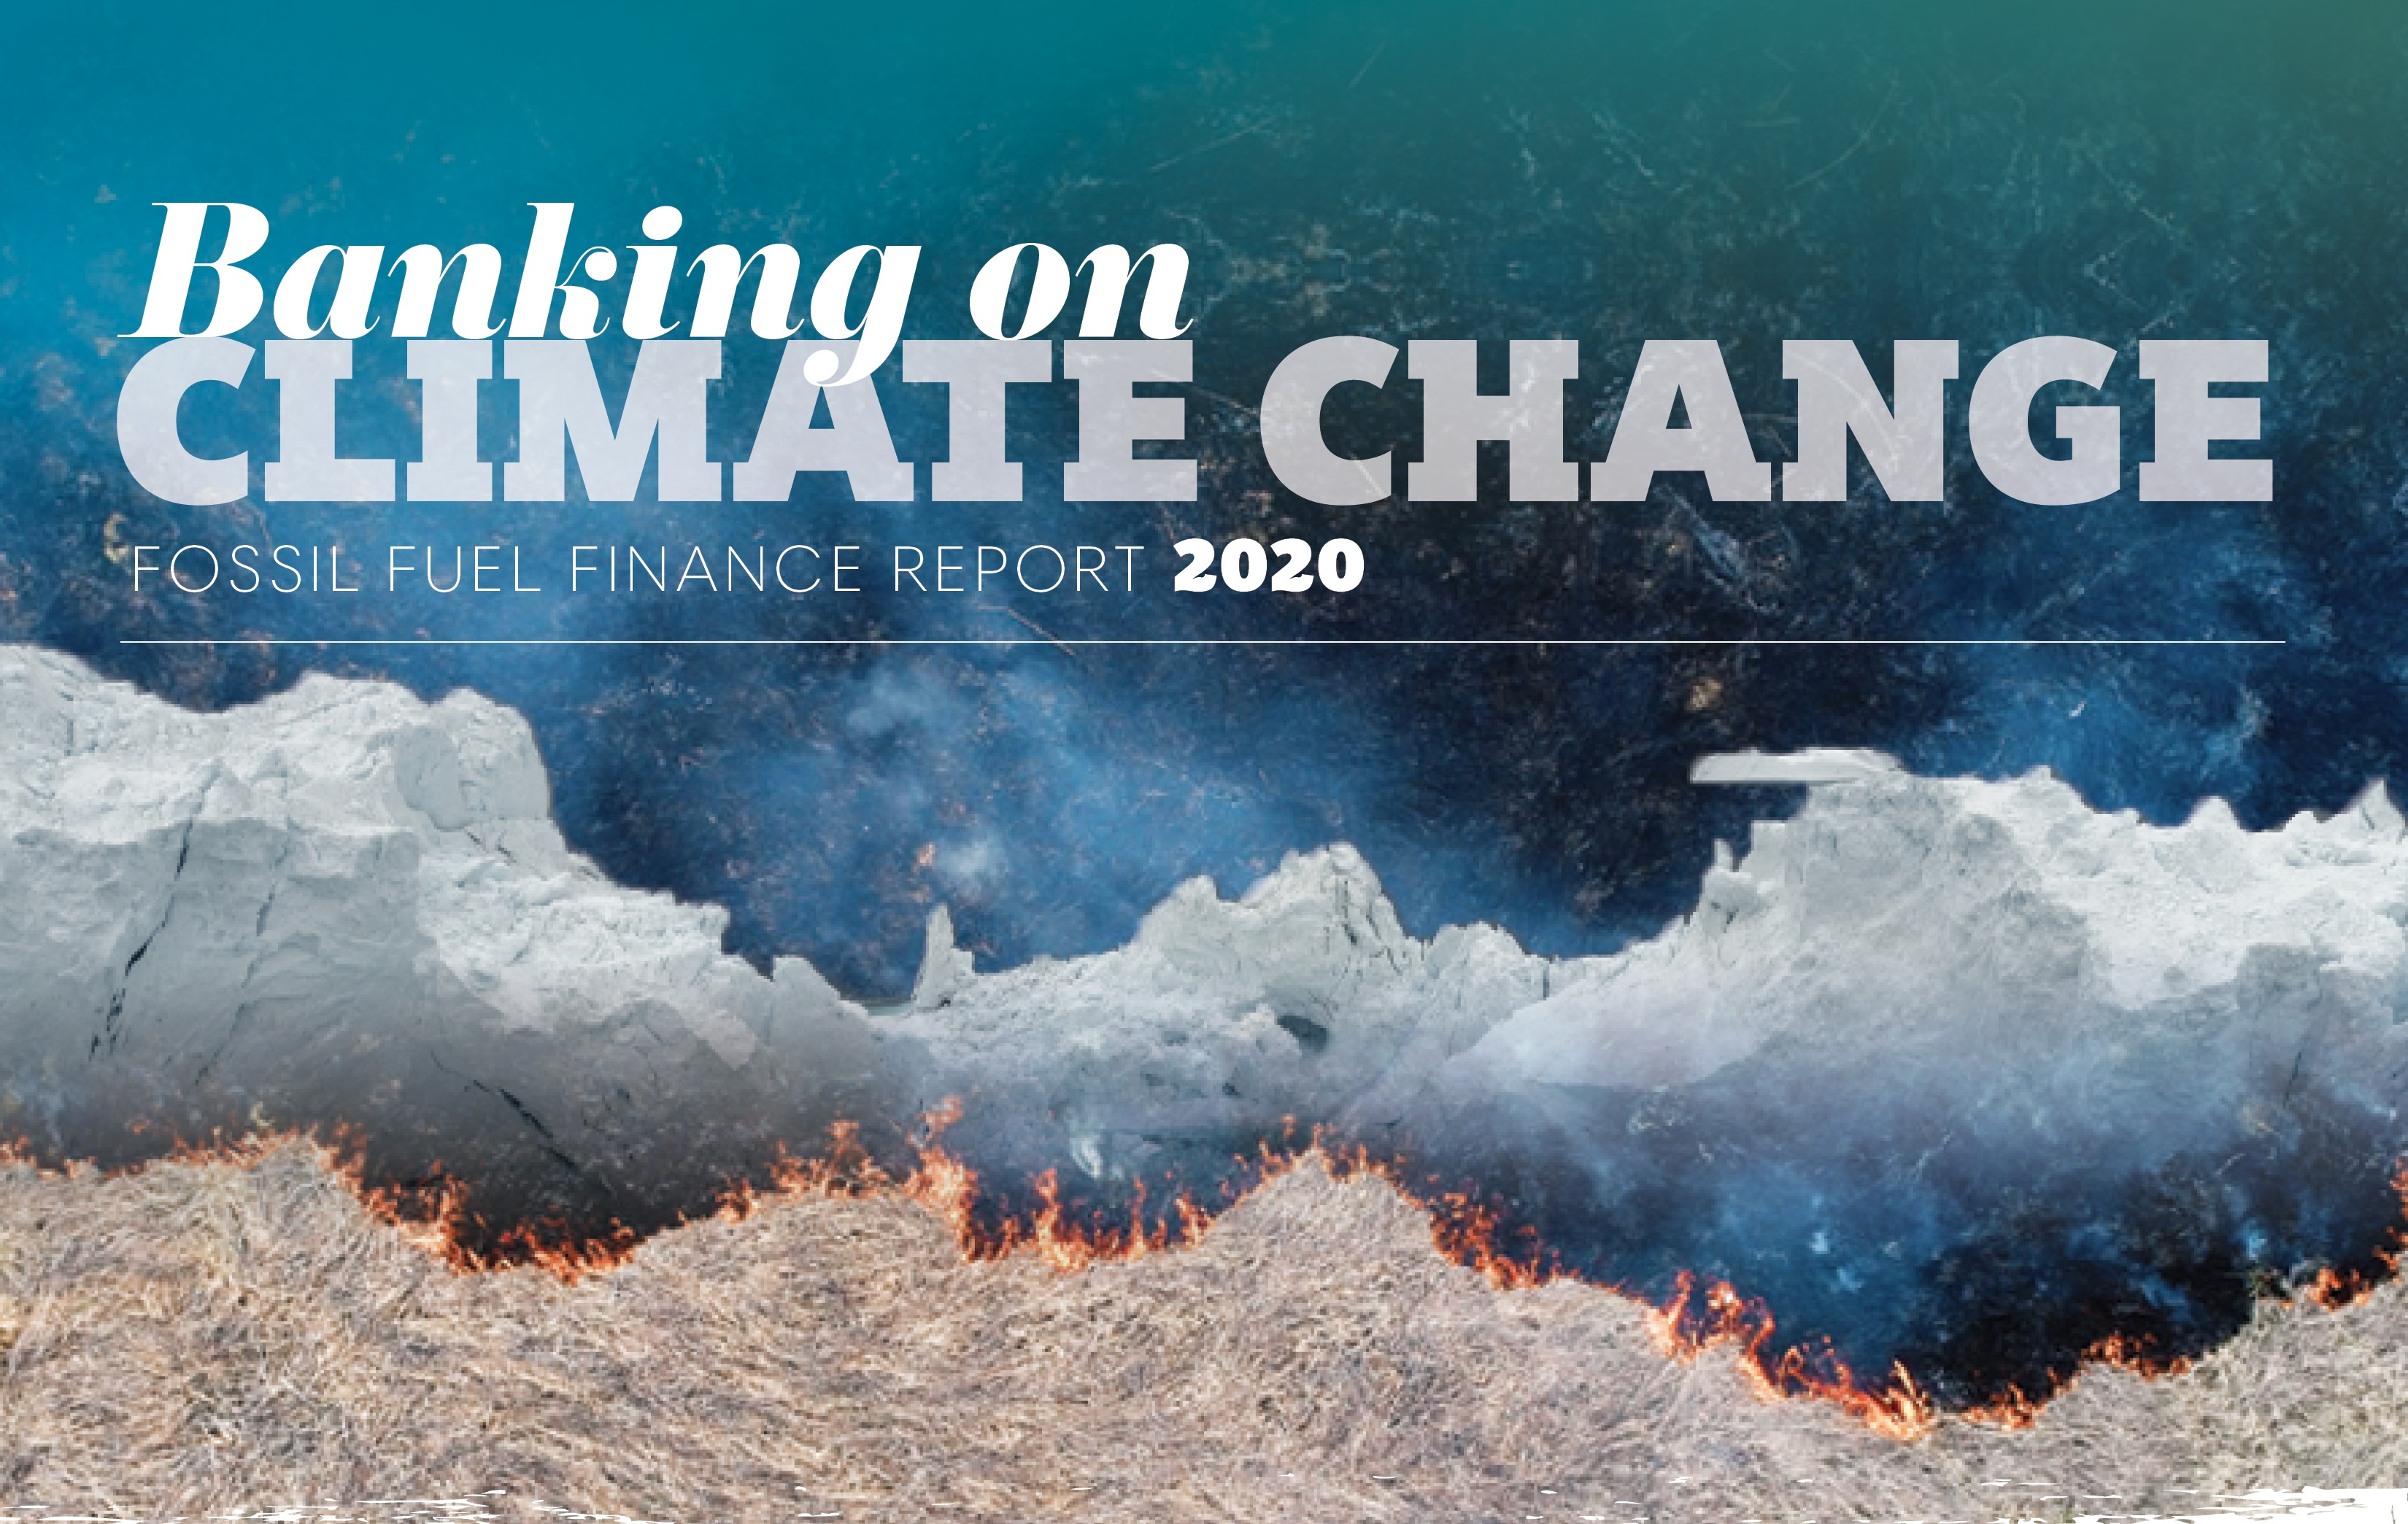 Banking on Climate Change 2020: Fossil Fuel Finance Report Card